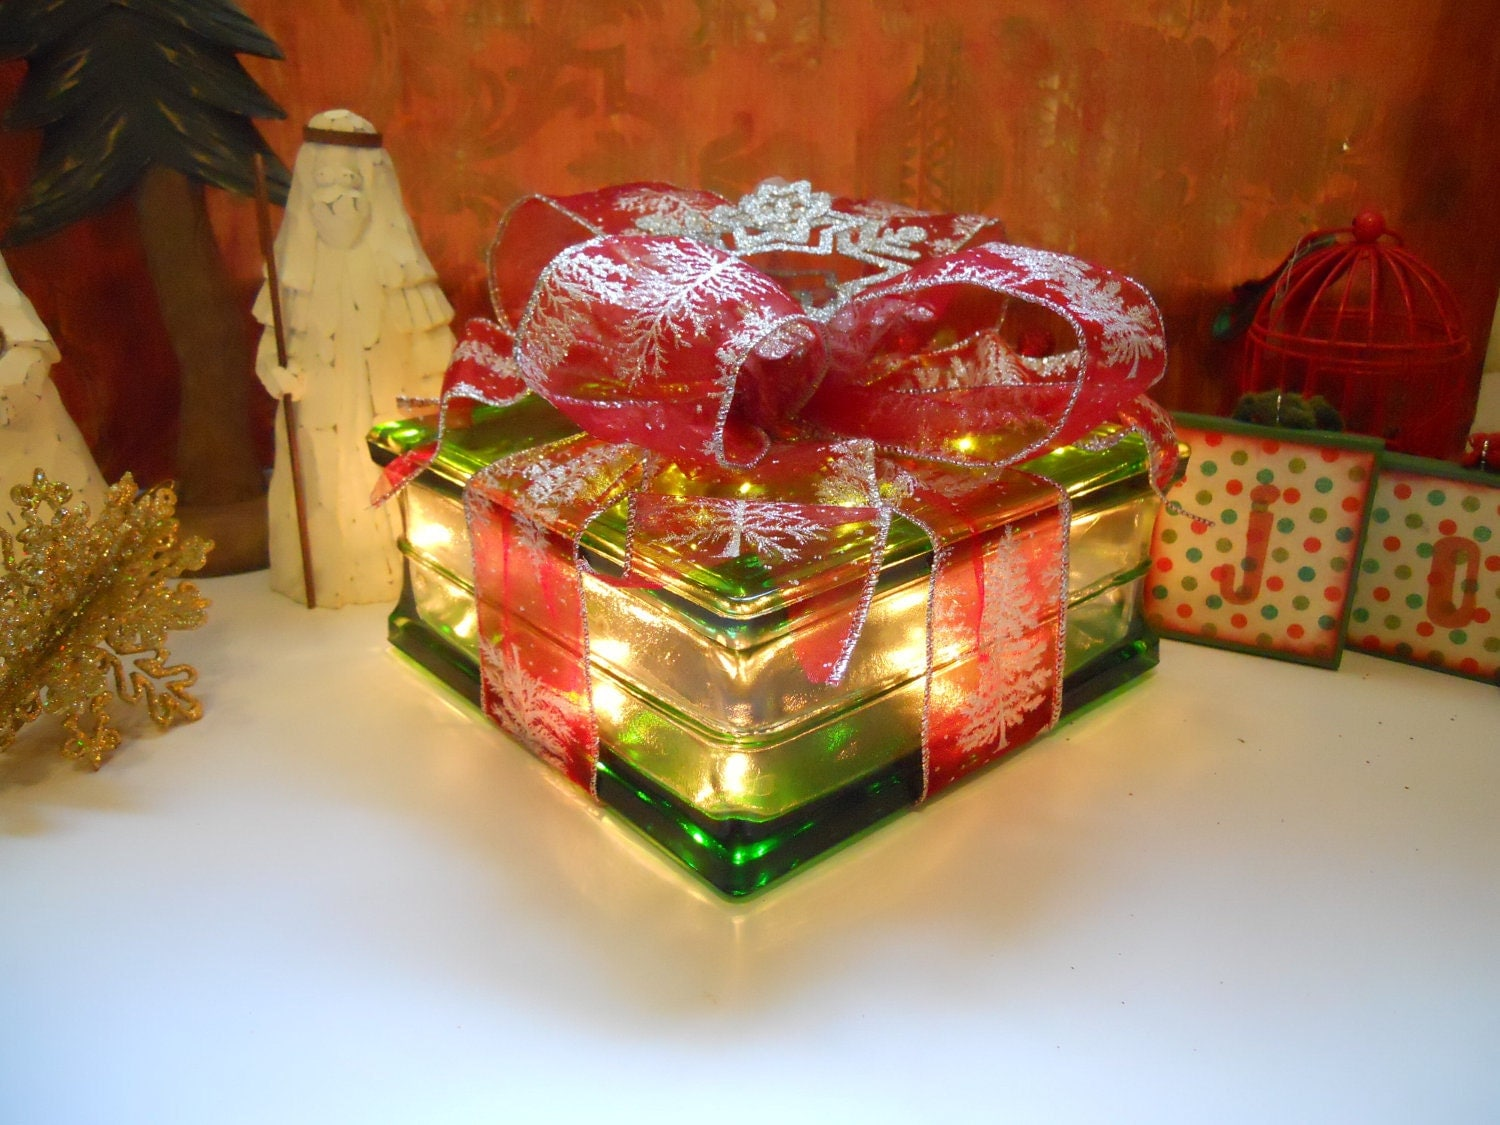 19 ideas for christmas decorated glass blocks the purple pumpkin blog - Glass block decoration ideas ...